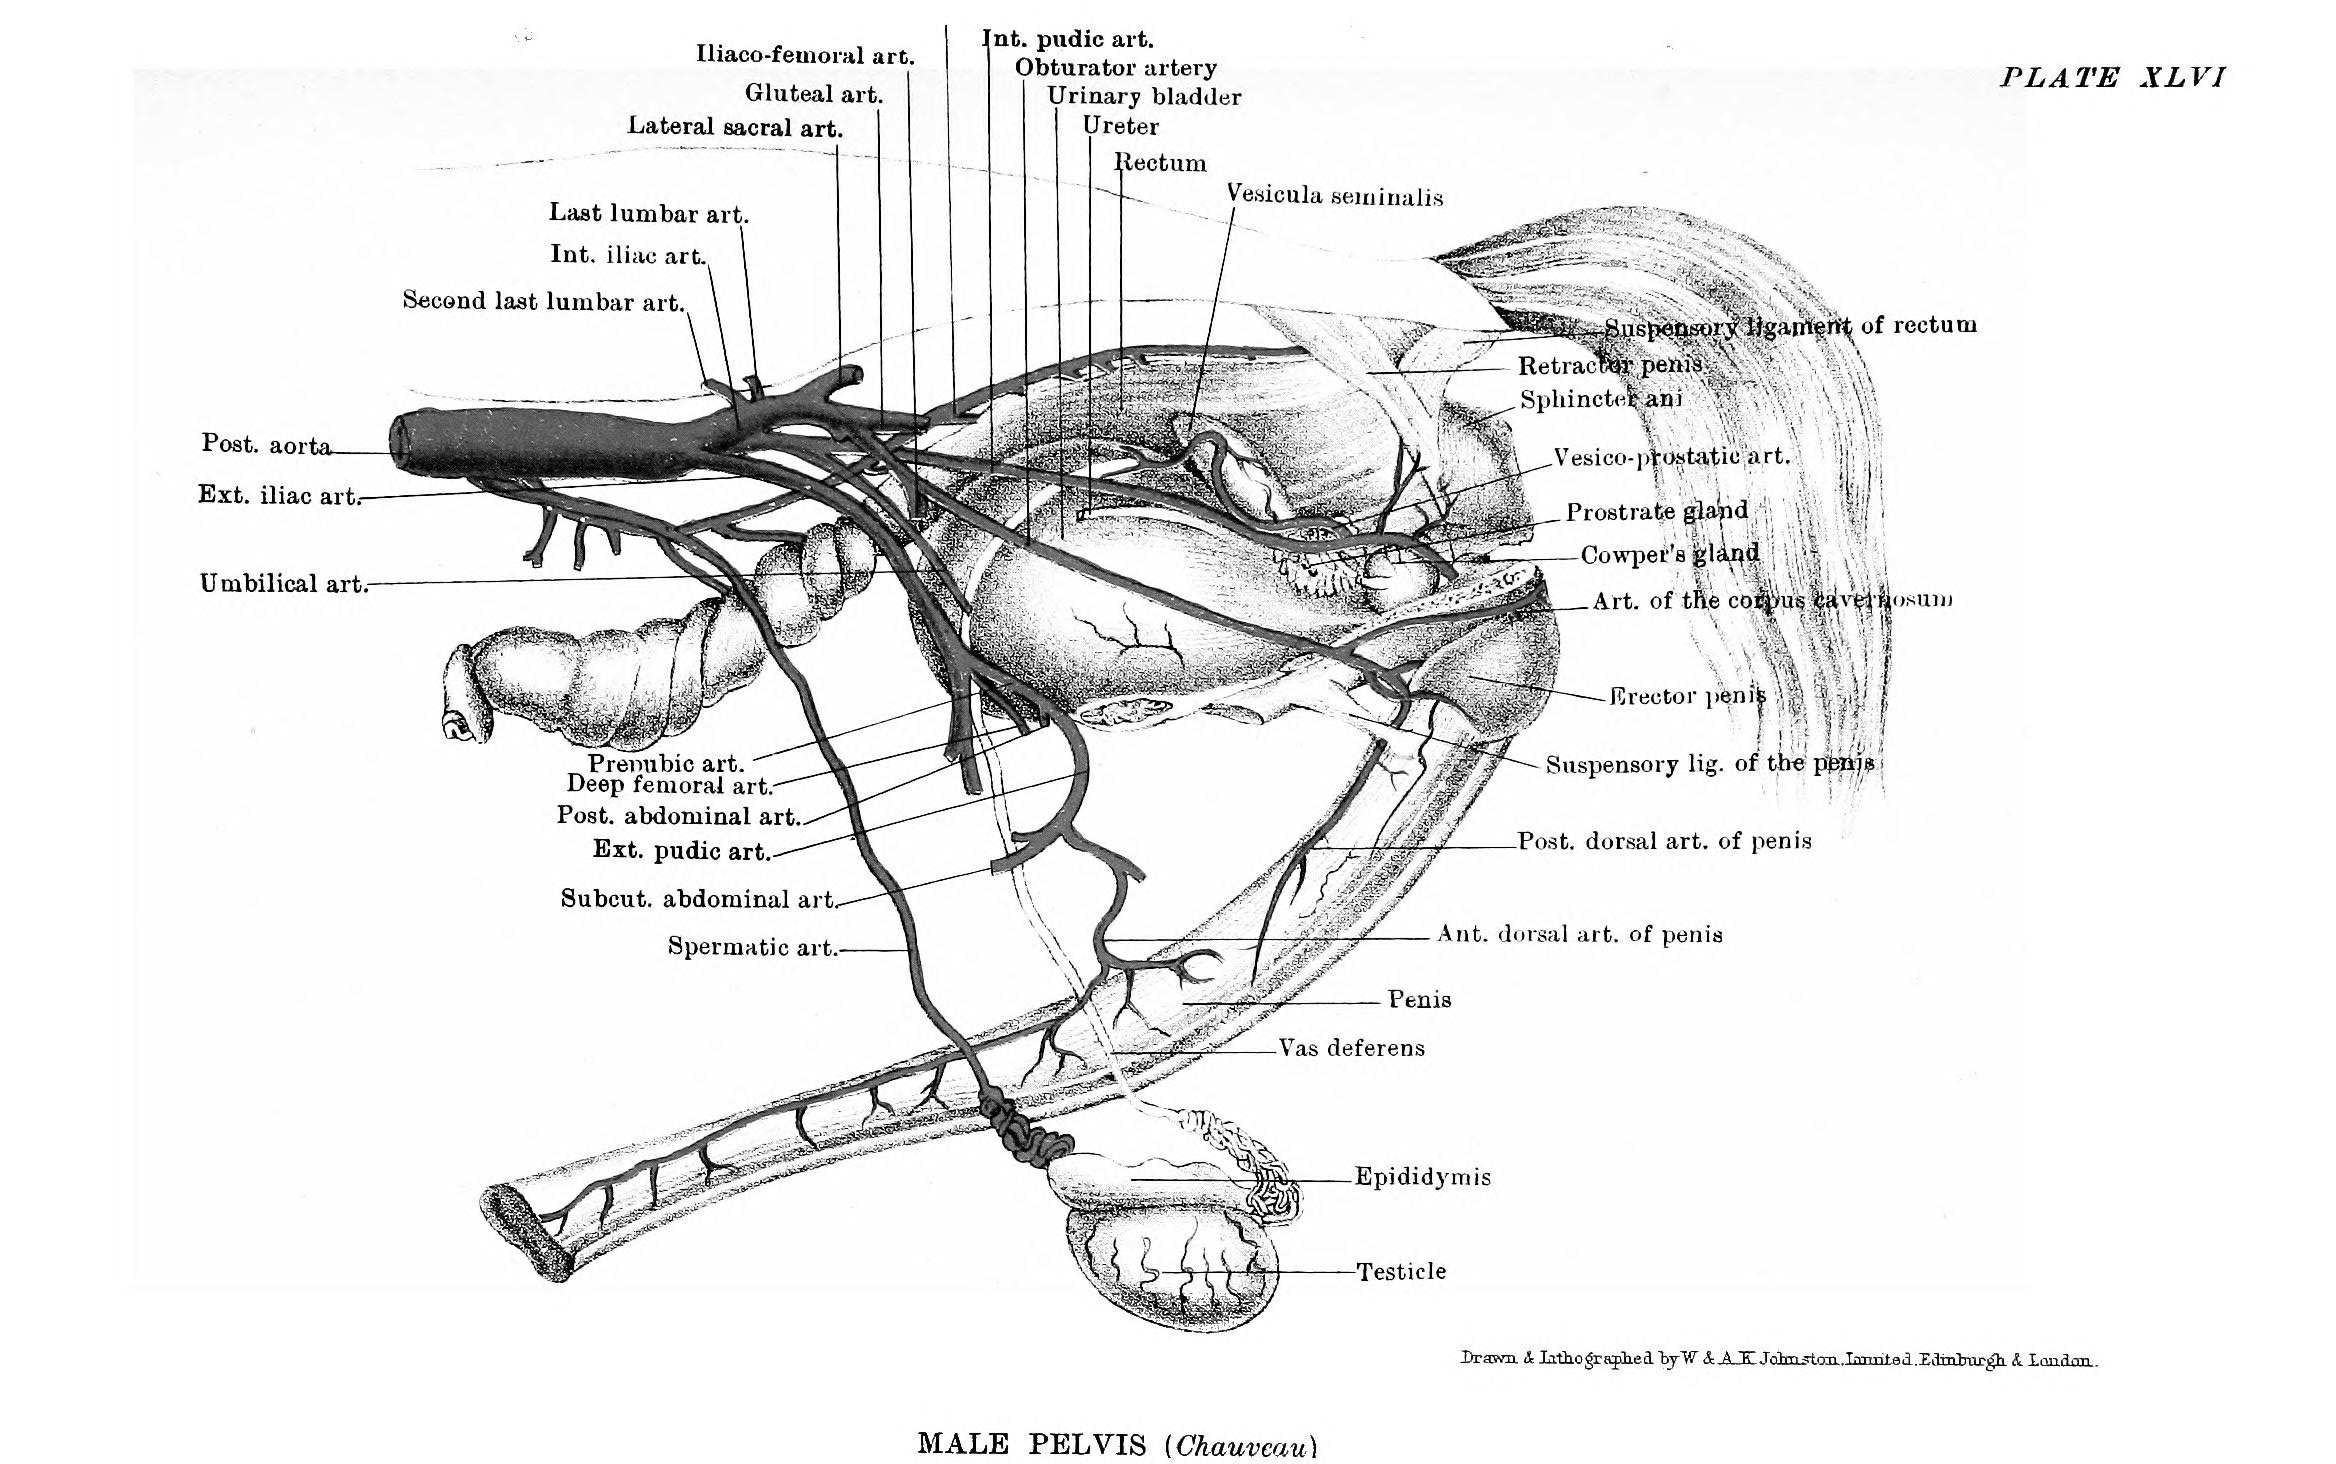 File:The anatomy of the horse, a dissection guide (1902